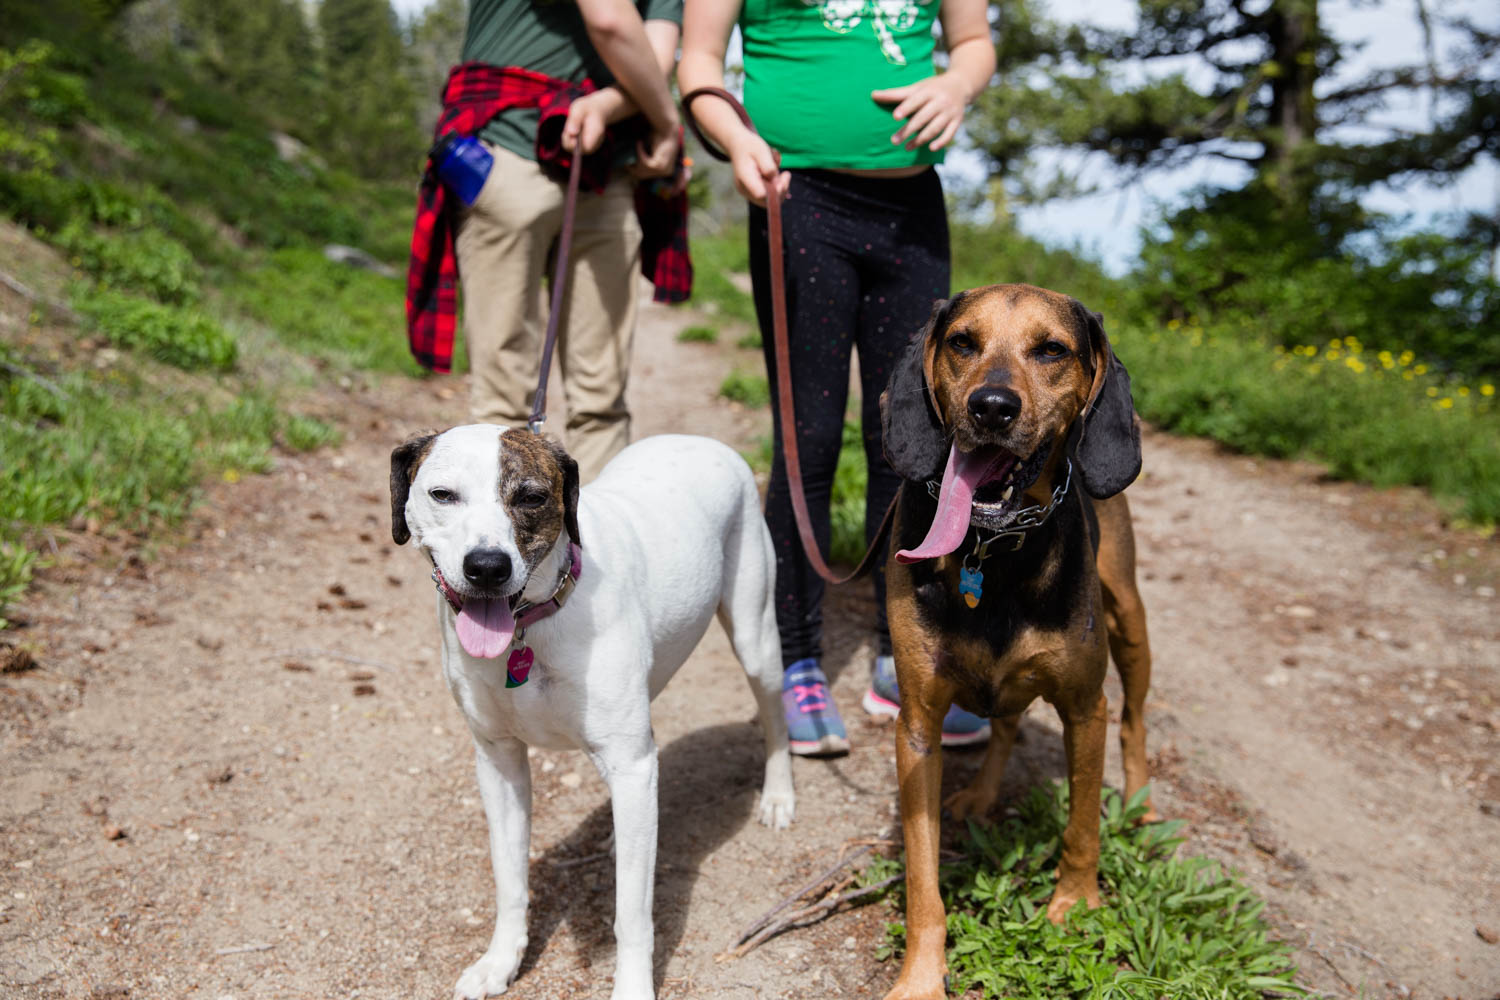 Two hounds standing with the family of two kids on a hike in the Bogus Basin mea of Boise Idaho. Dog with tongue standing out and kids waiting for next move.